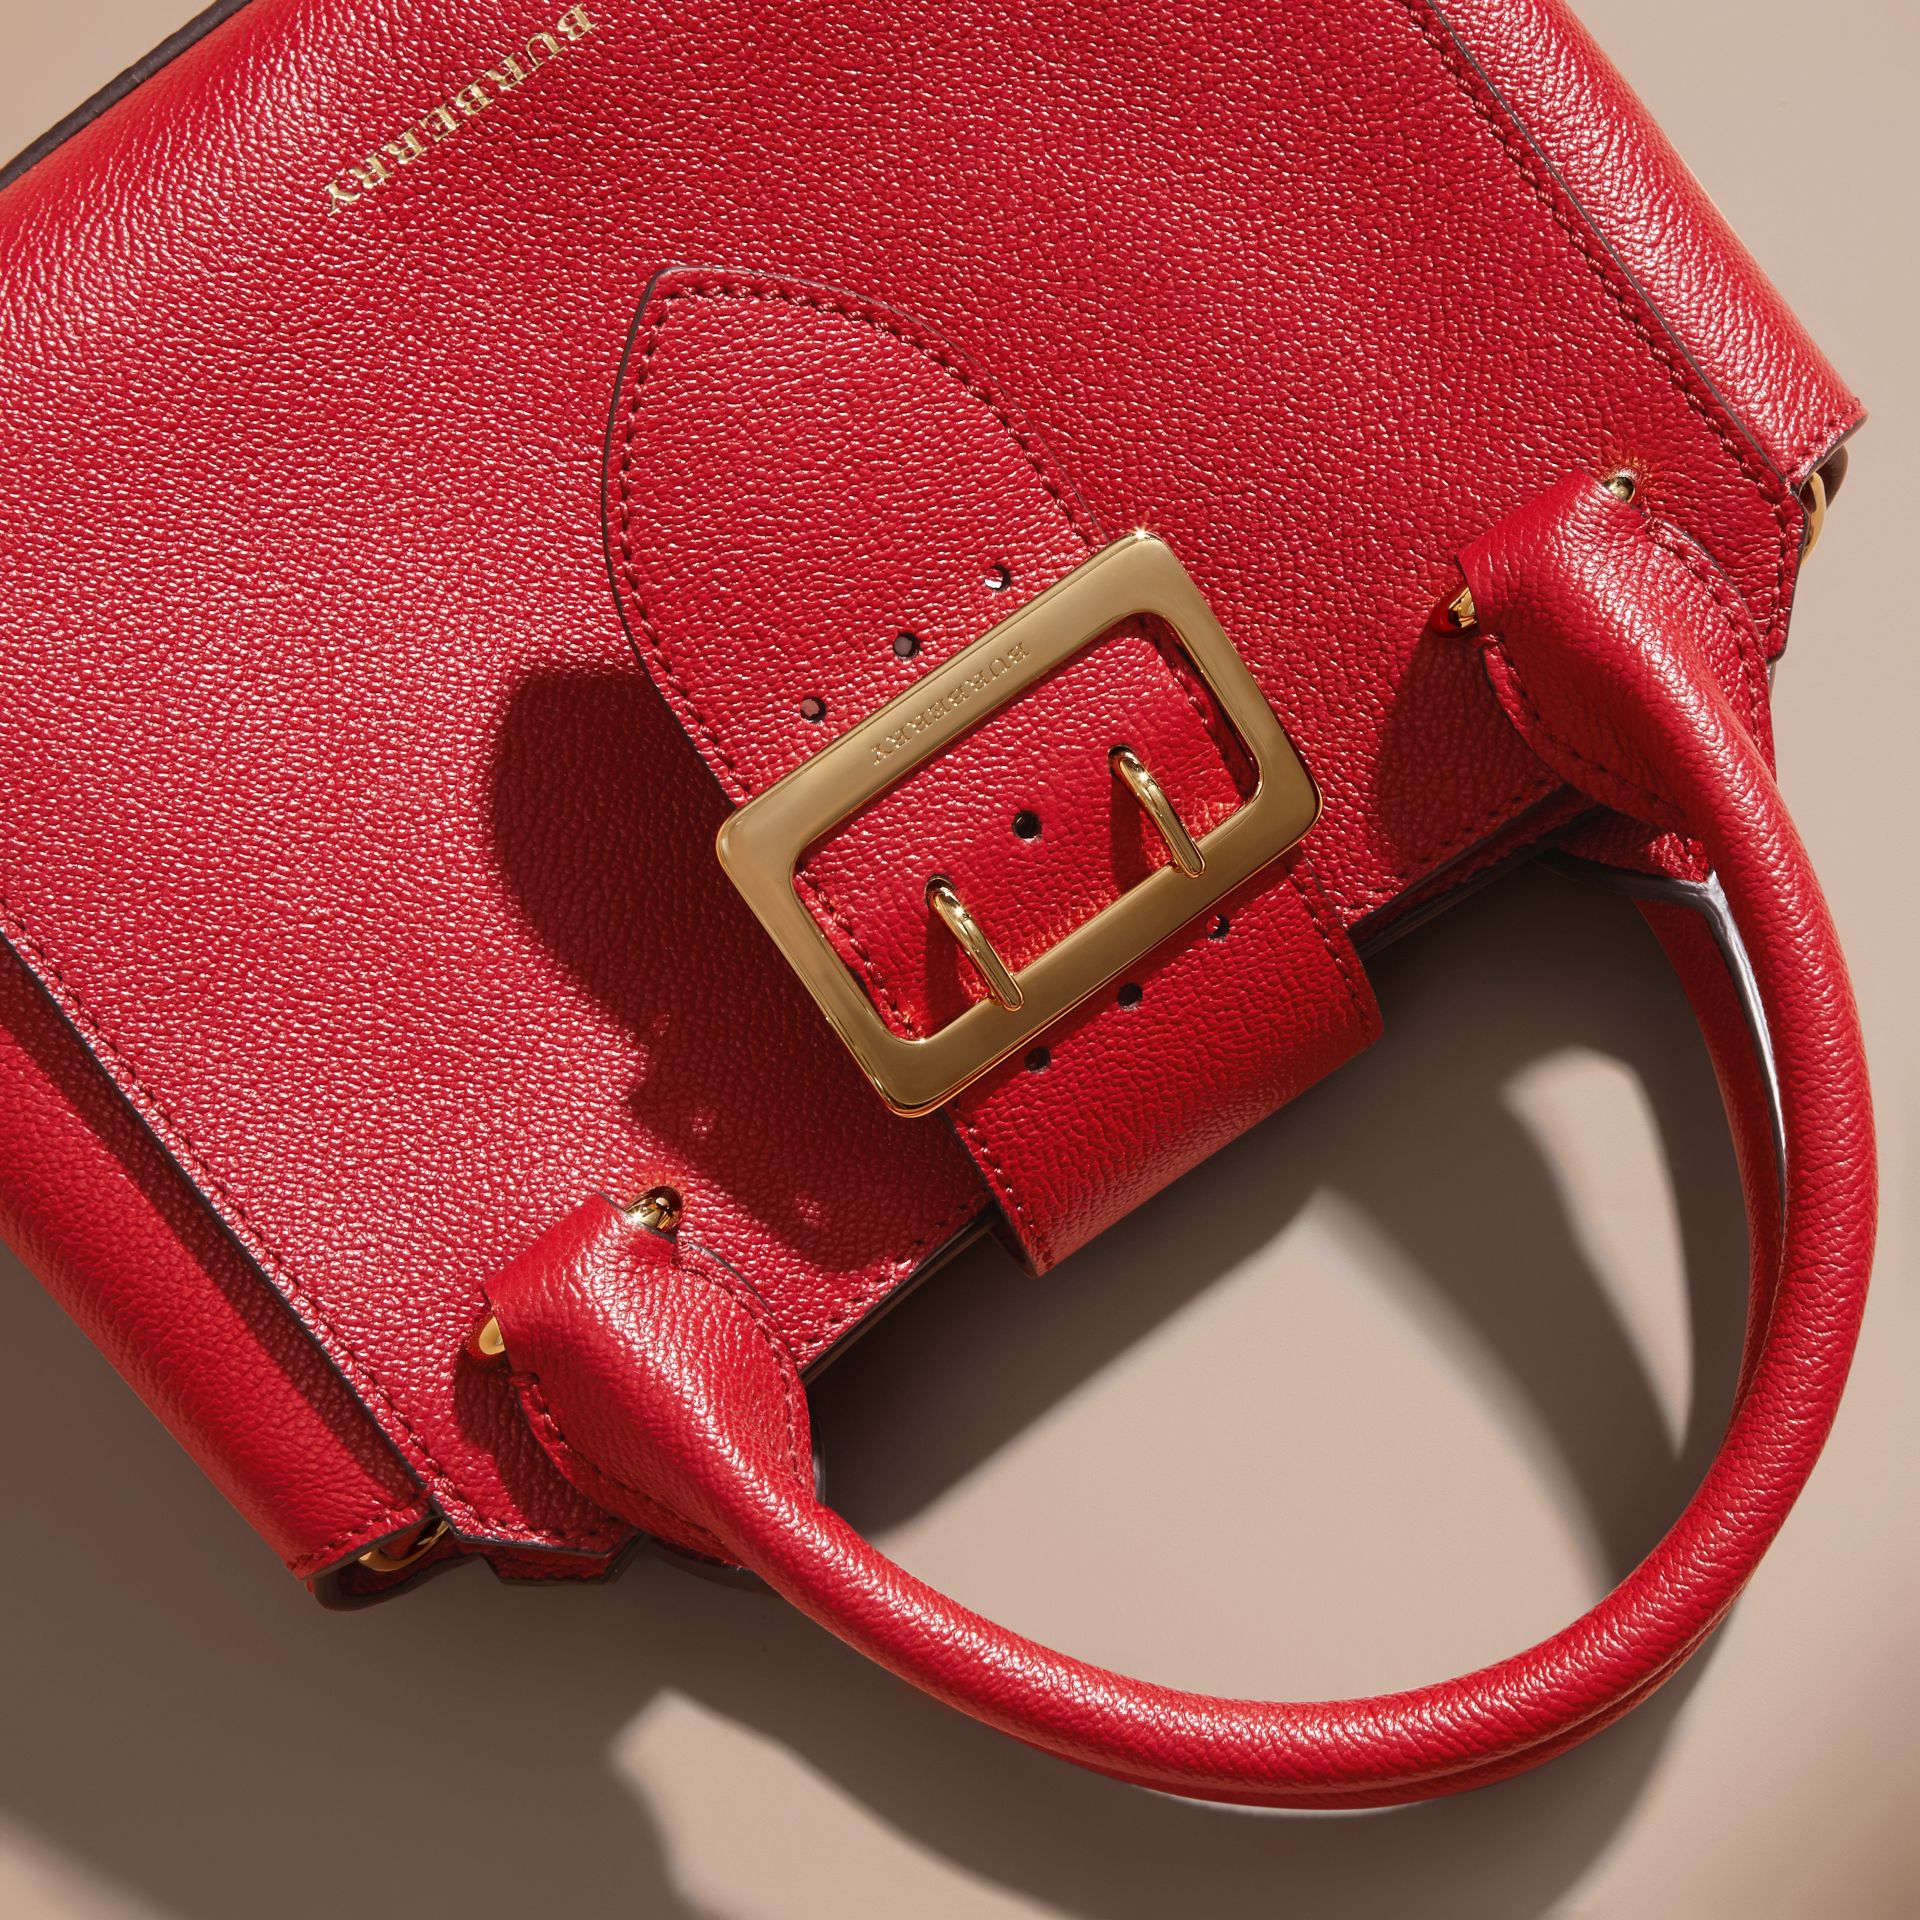 The Small Buckle Tote in Grainy Leather in Parade Red - Women | Burberry - gallery image 2